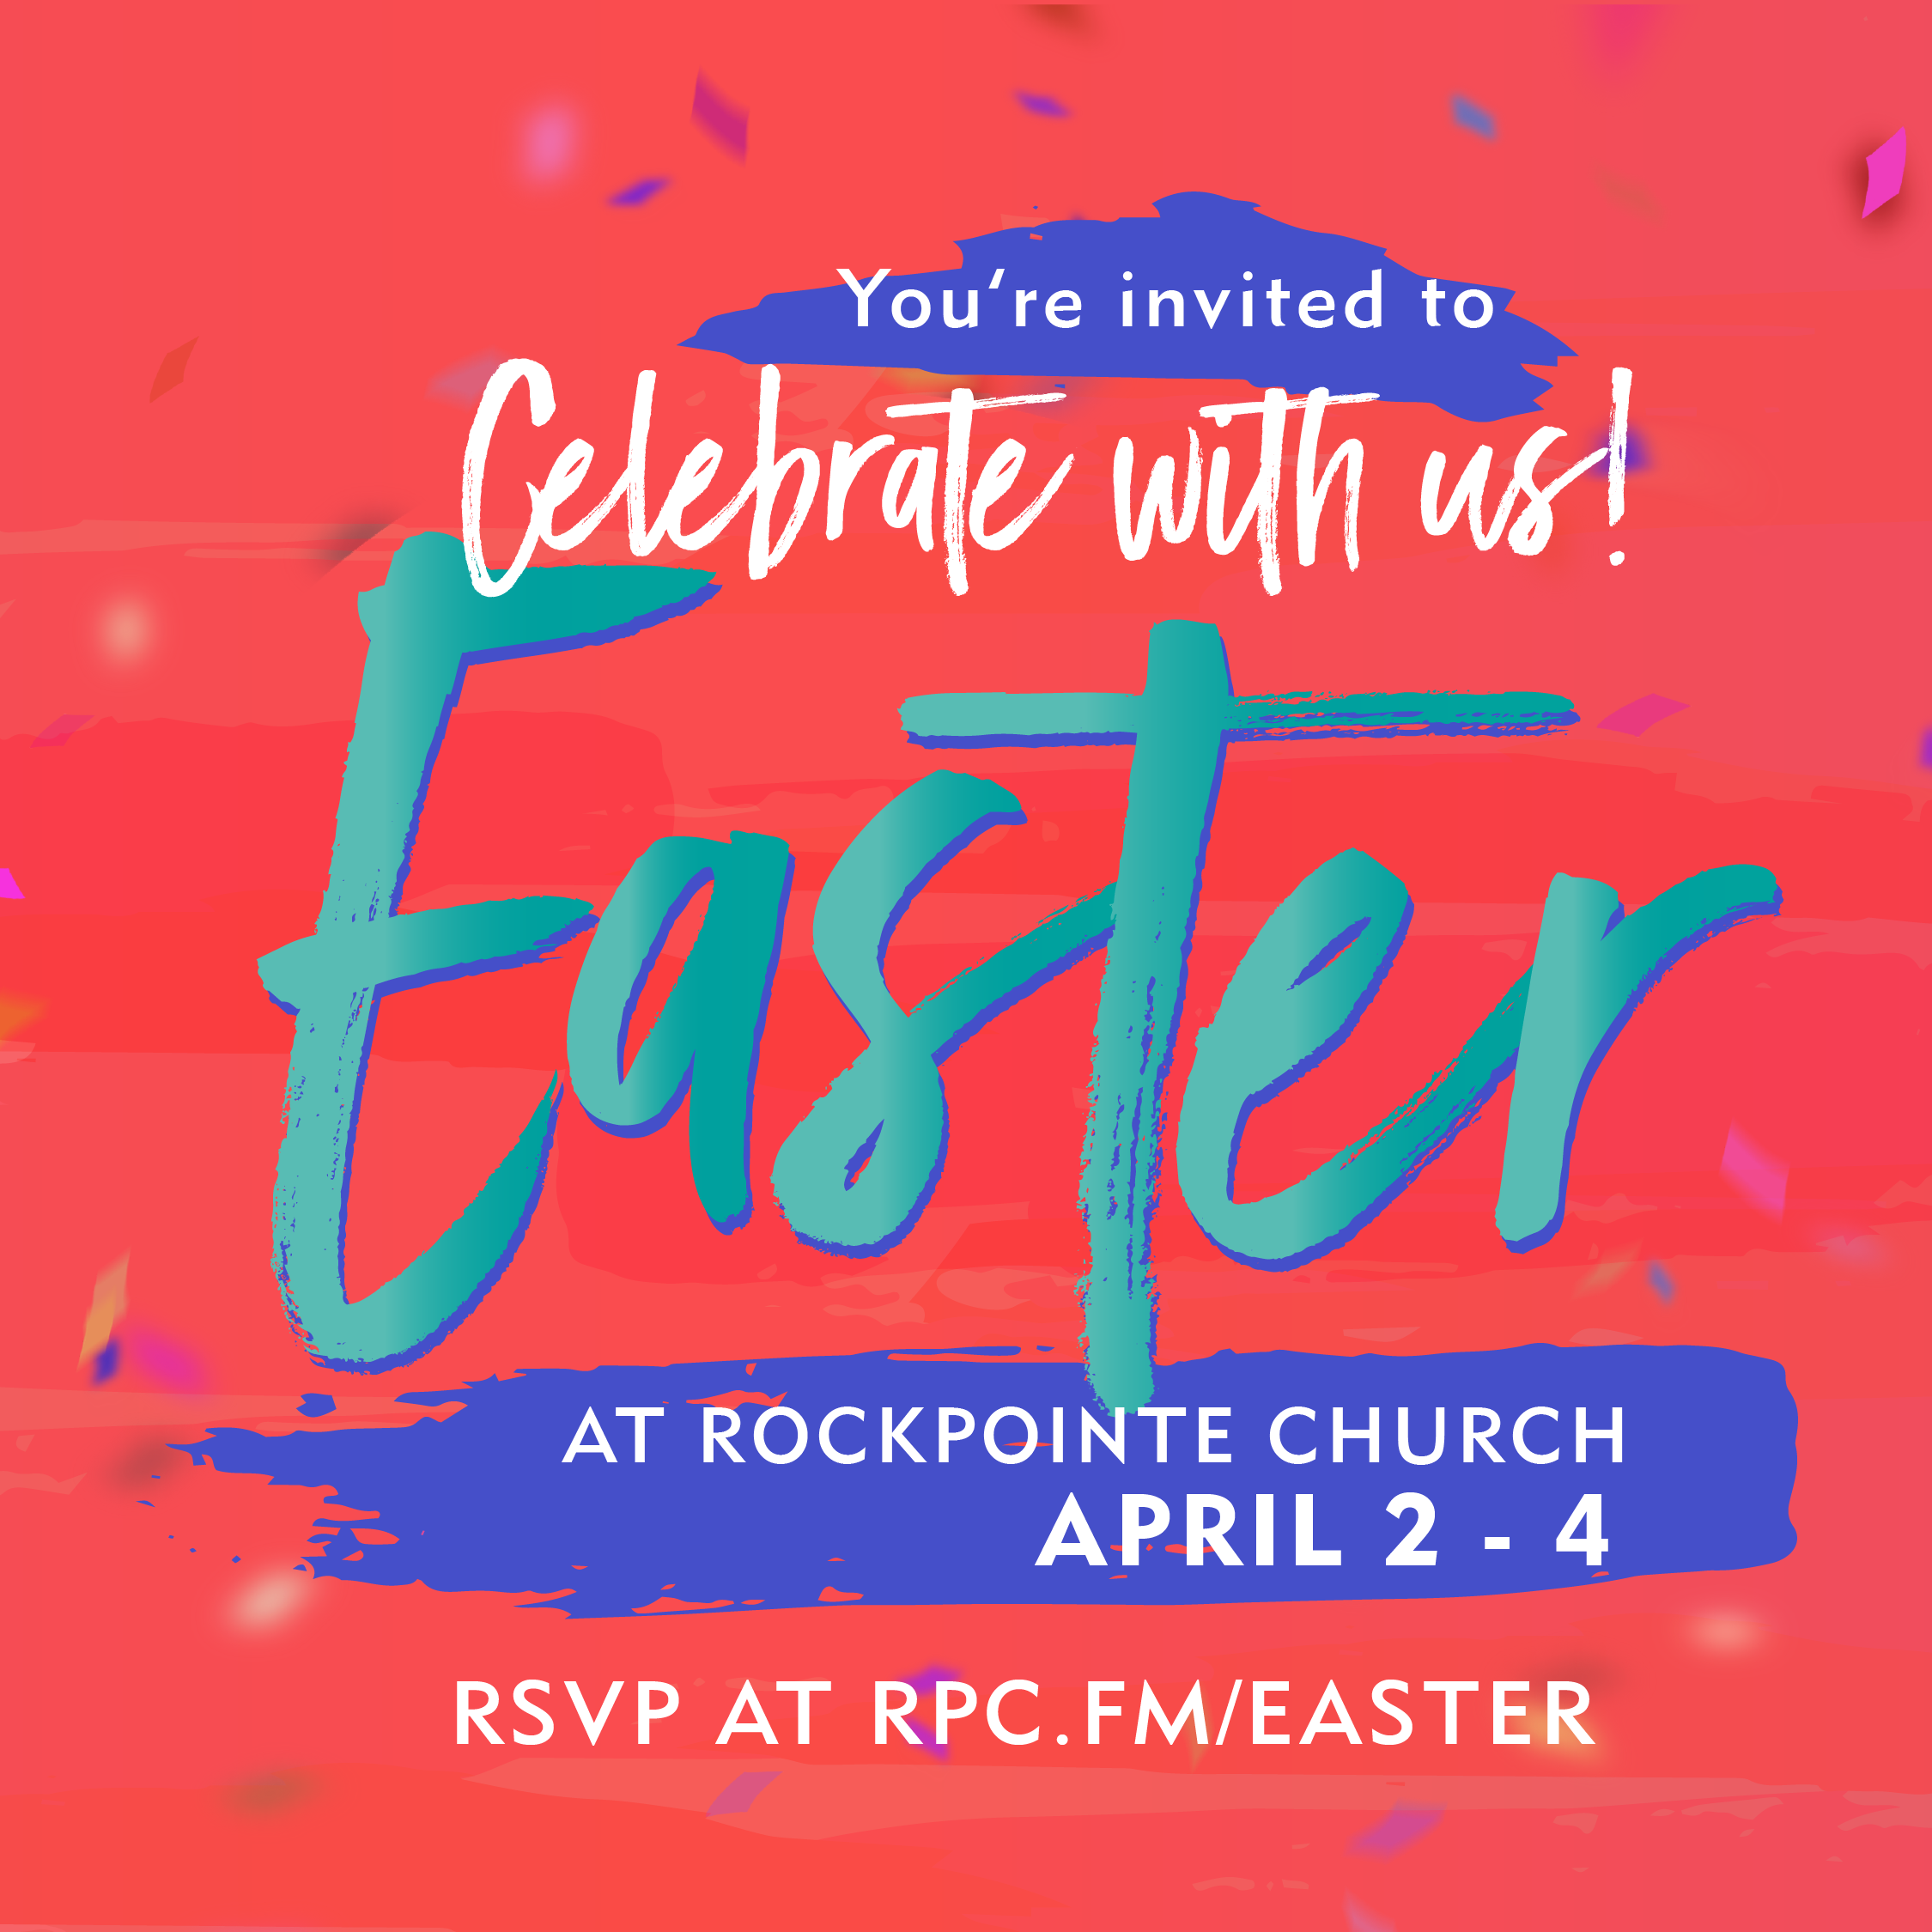 Easter at RockPointe